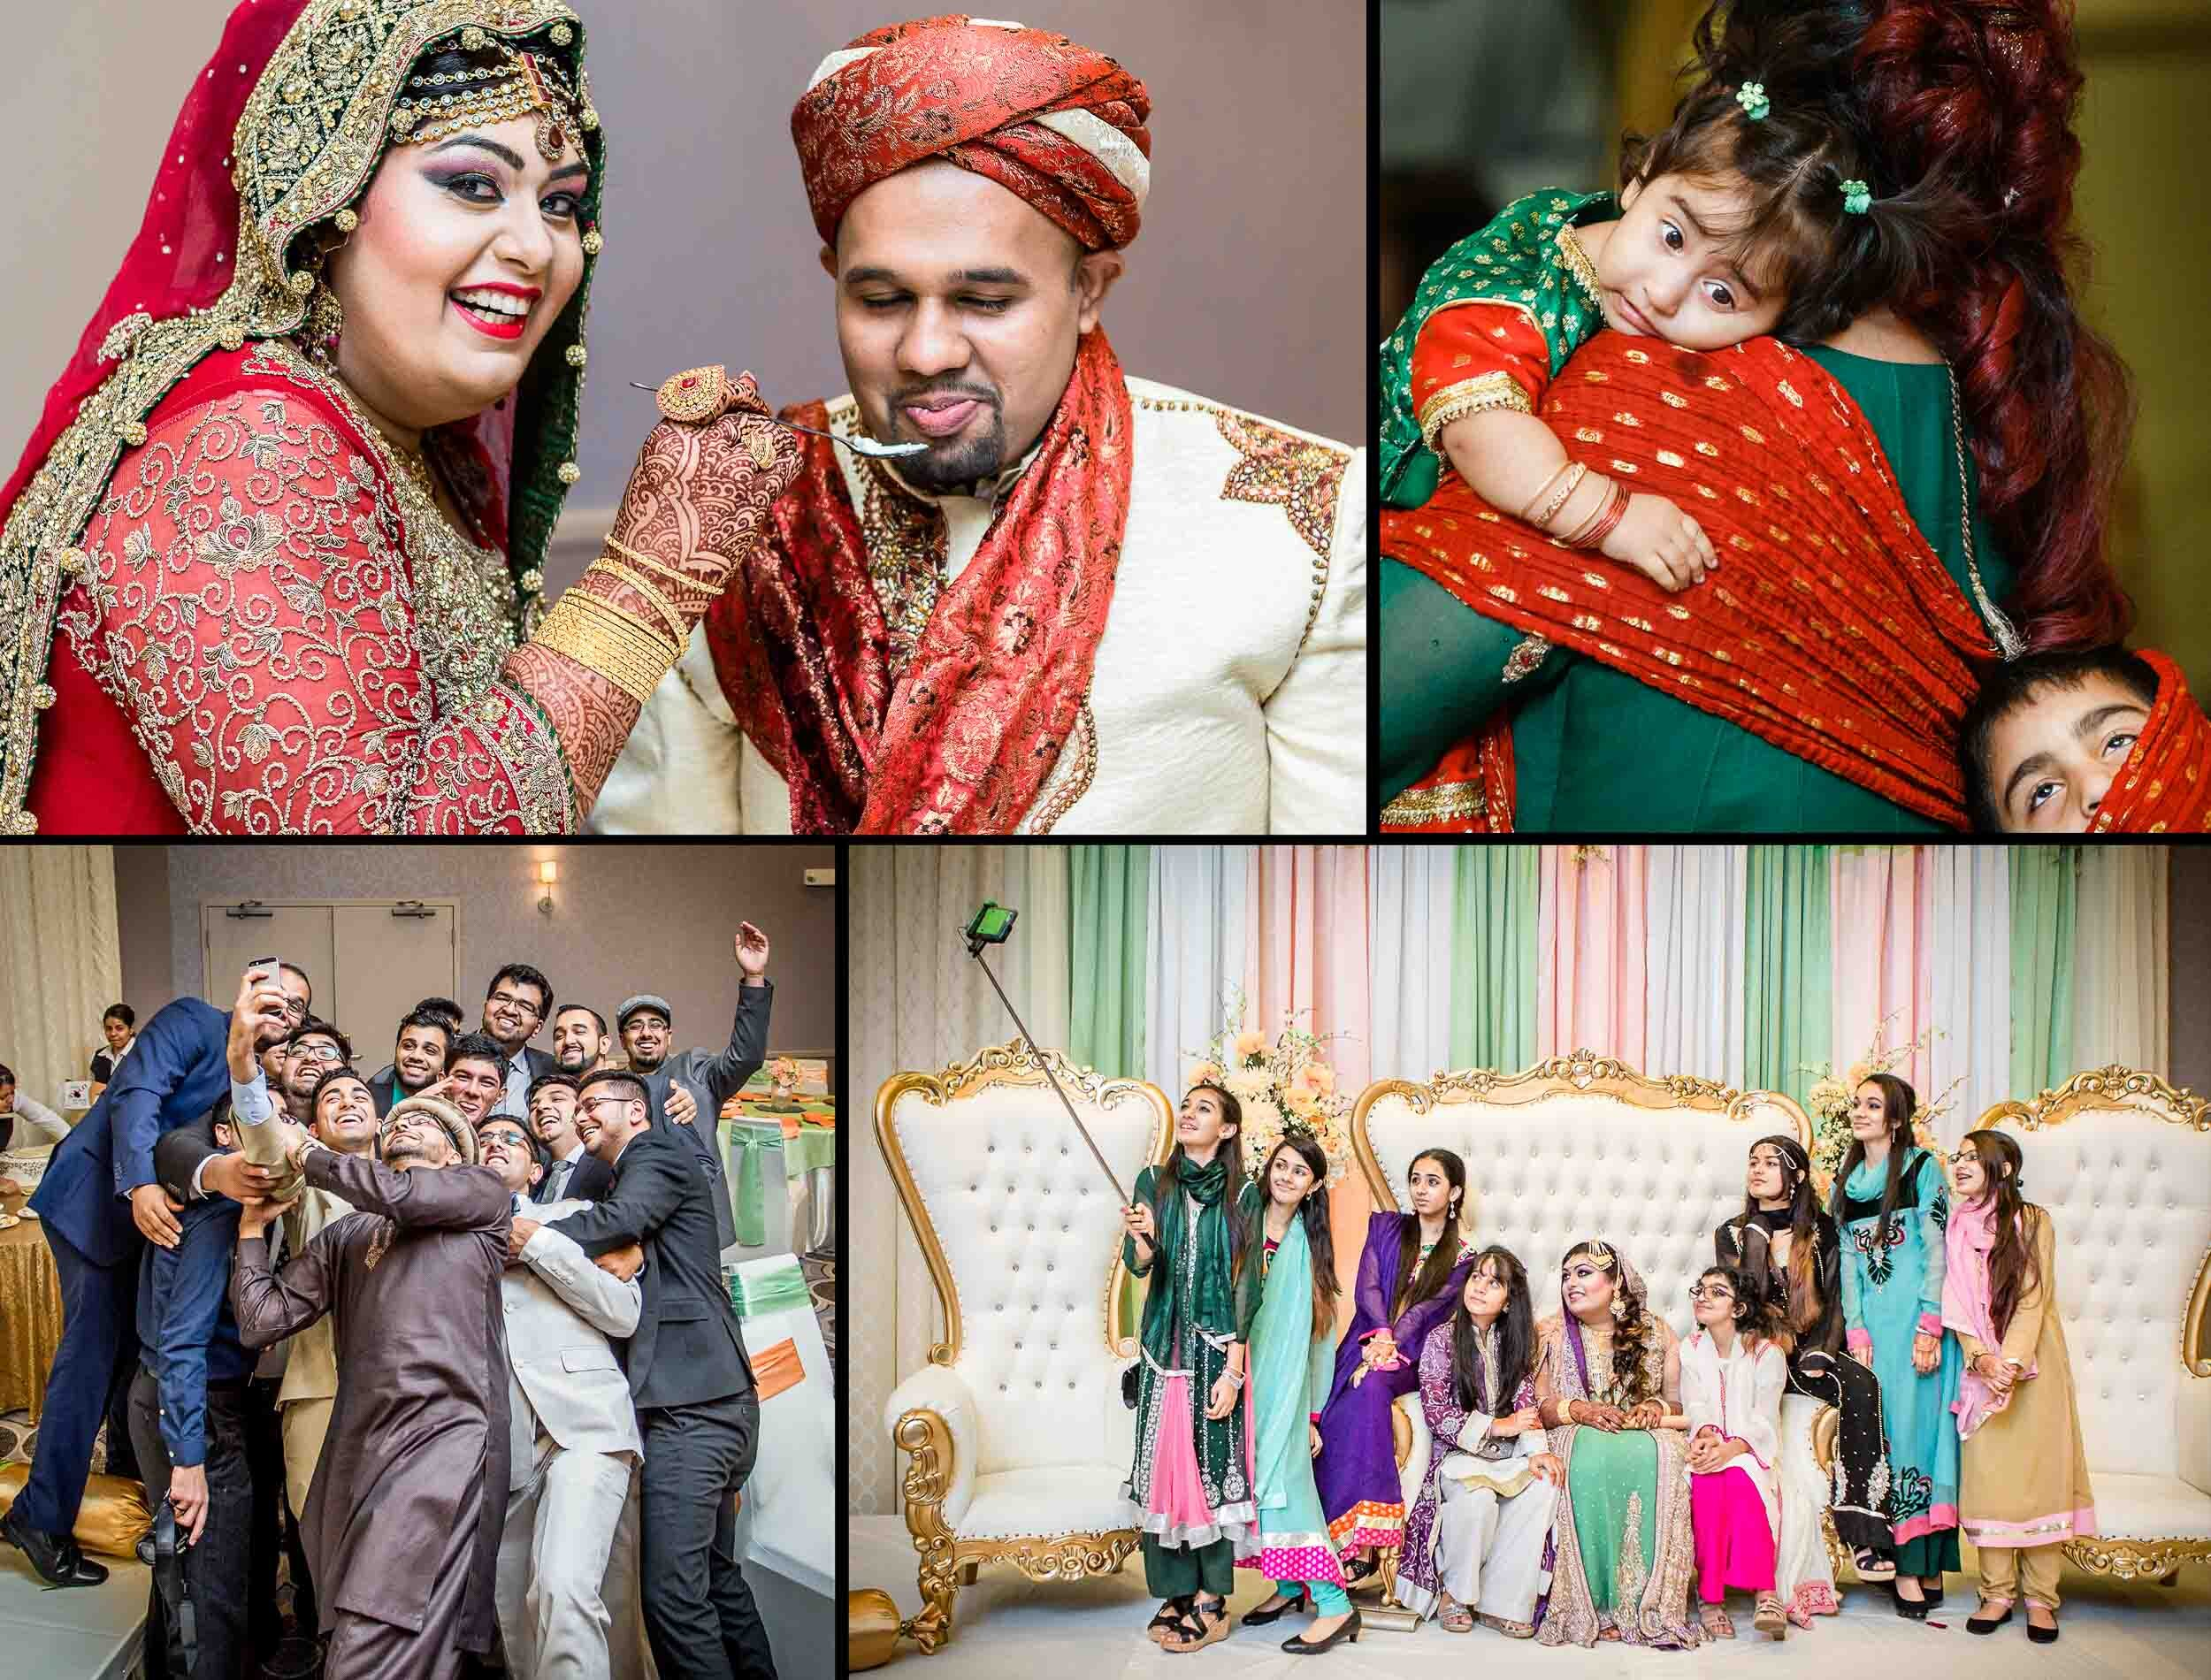 32-New-Orleans-Pakistani-Muslim-Wedding-Willows-World-Photo.jpg